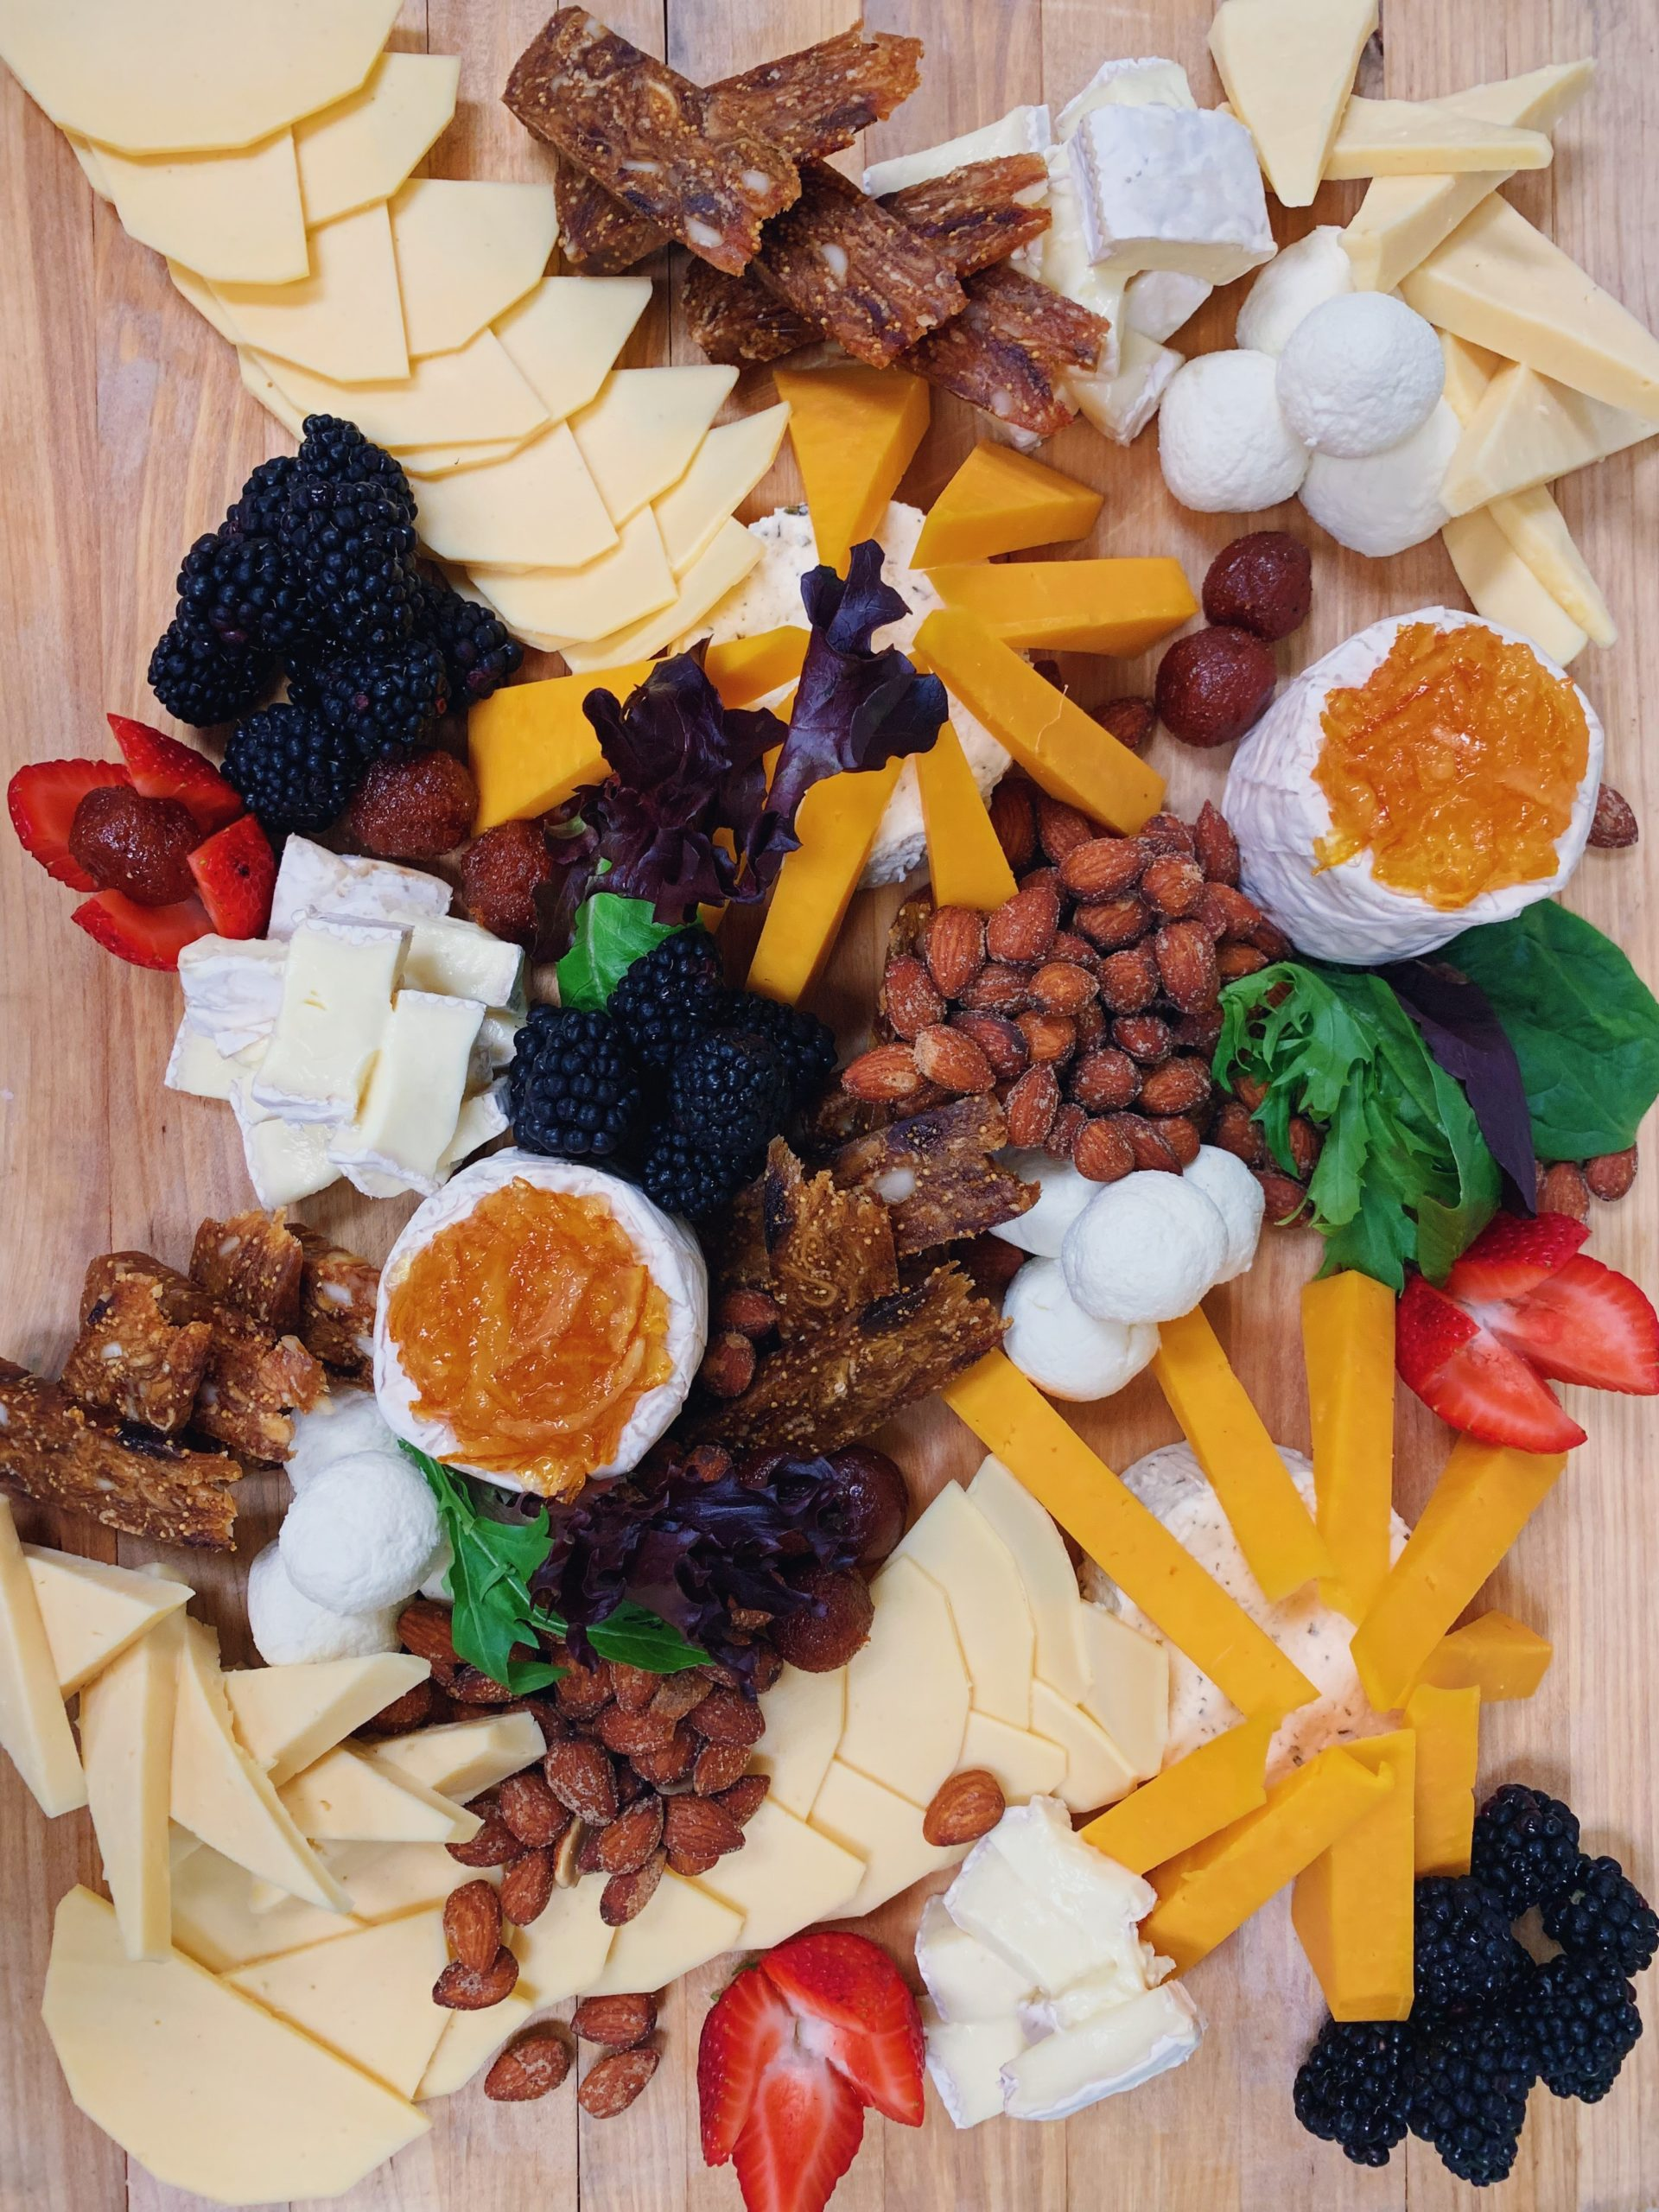 loaded and colorful platter of cheese, meat, fruit, candy peanuts and greens on a wood board